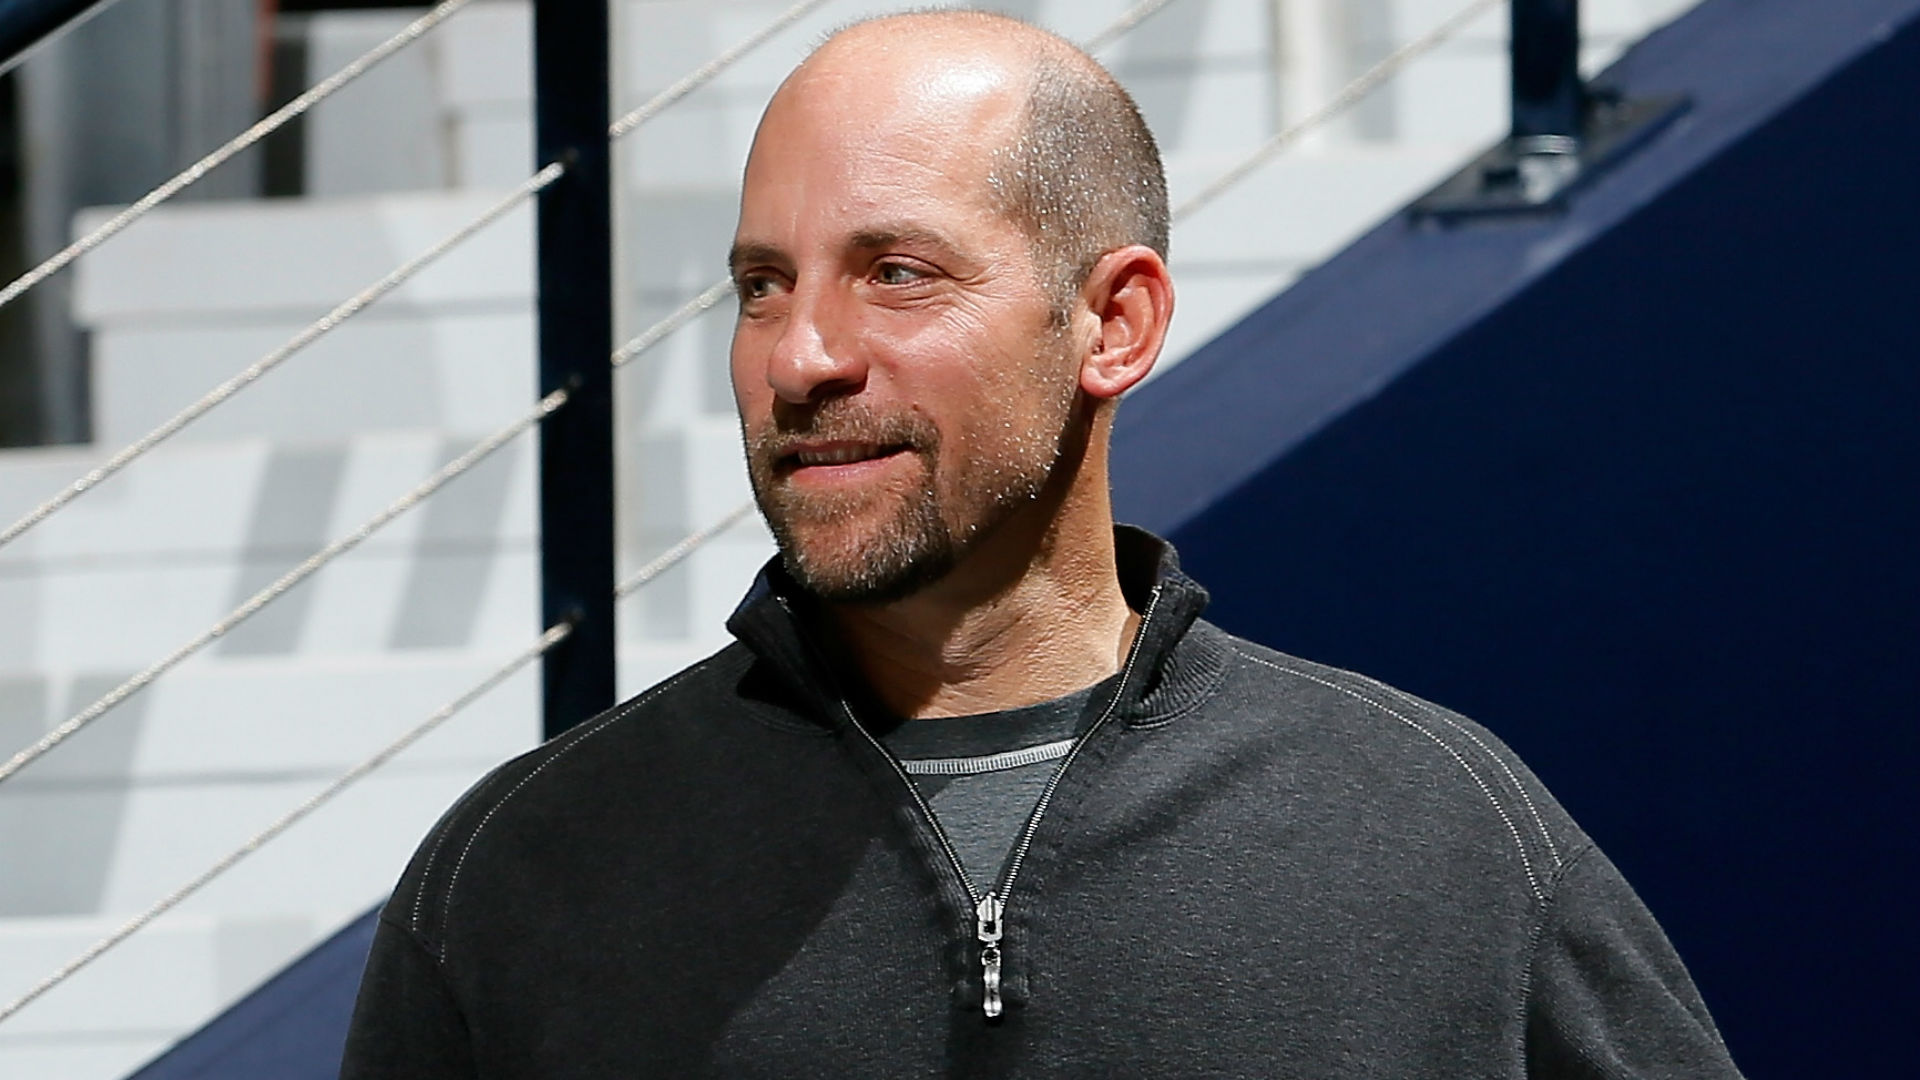 Smoltz will tee off at 9:21 a.m. ET Thursday with Jim McGovern and Bob Ford at The Broadmoor in Colorado Springs.